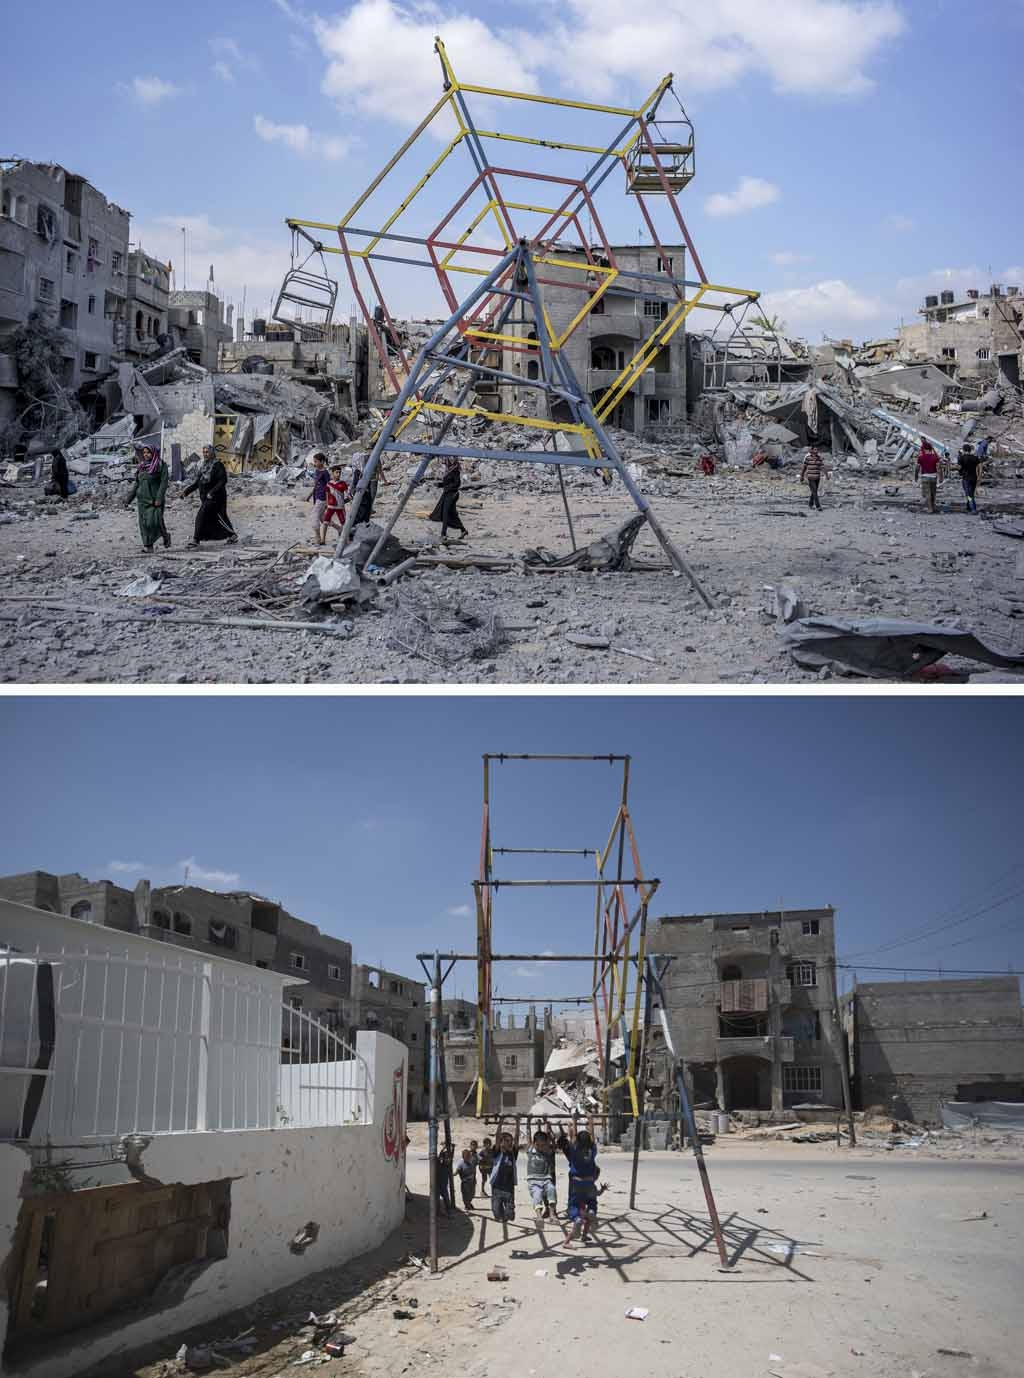 A ferris wheel and the rubble of buildings in the northern district of Beit Hanun in the Gaza Strip on July 26, 2014, and the same place